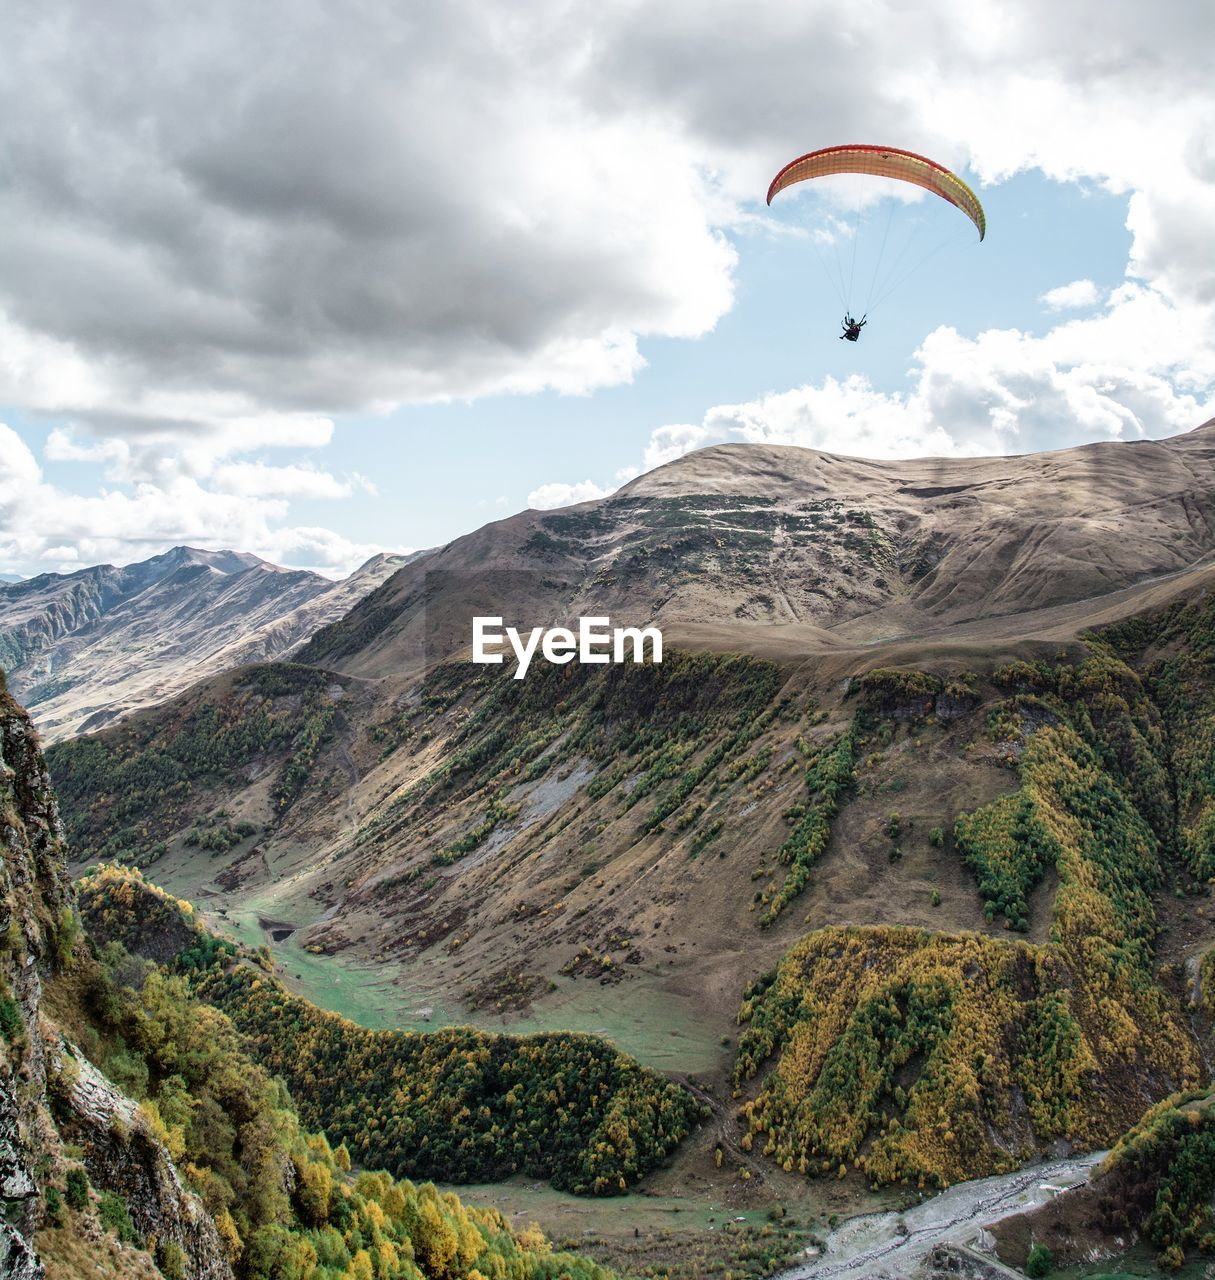 Man Paragliding Over Mountain Against Cloudy Sky